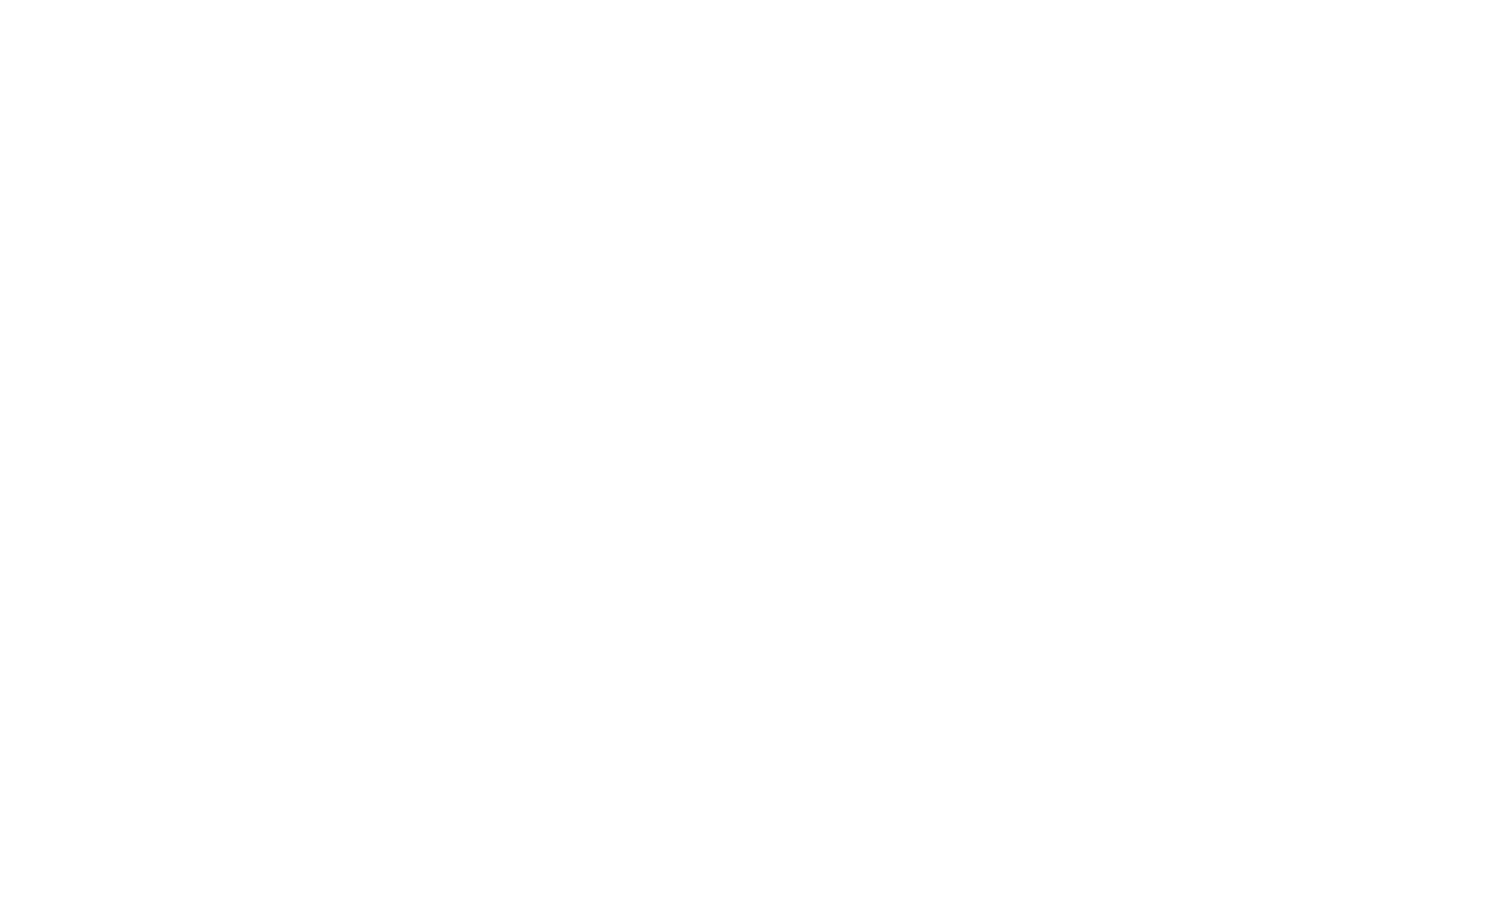 Raintree Mortgage